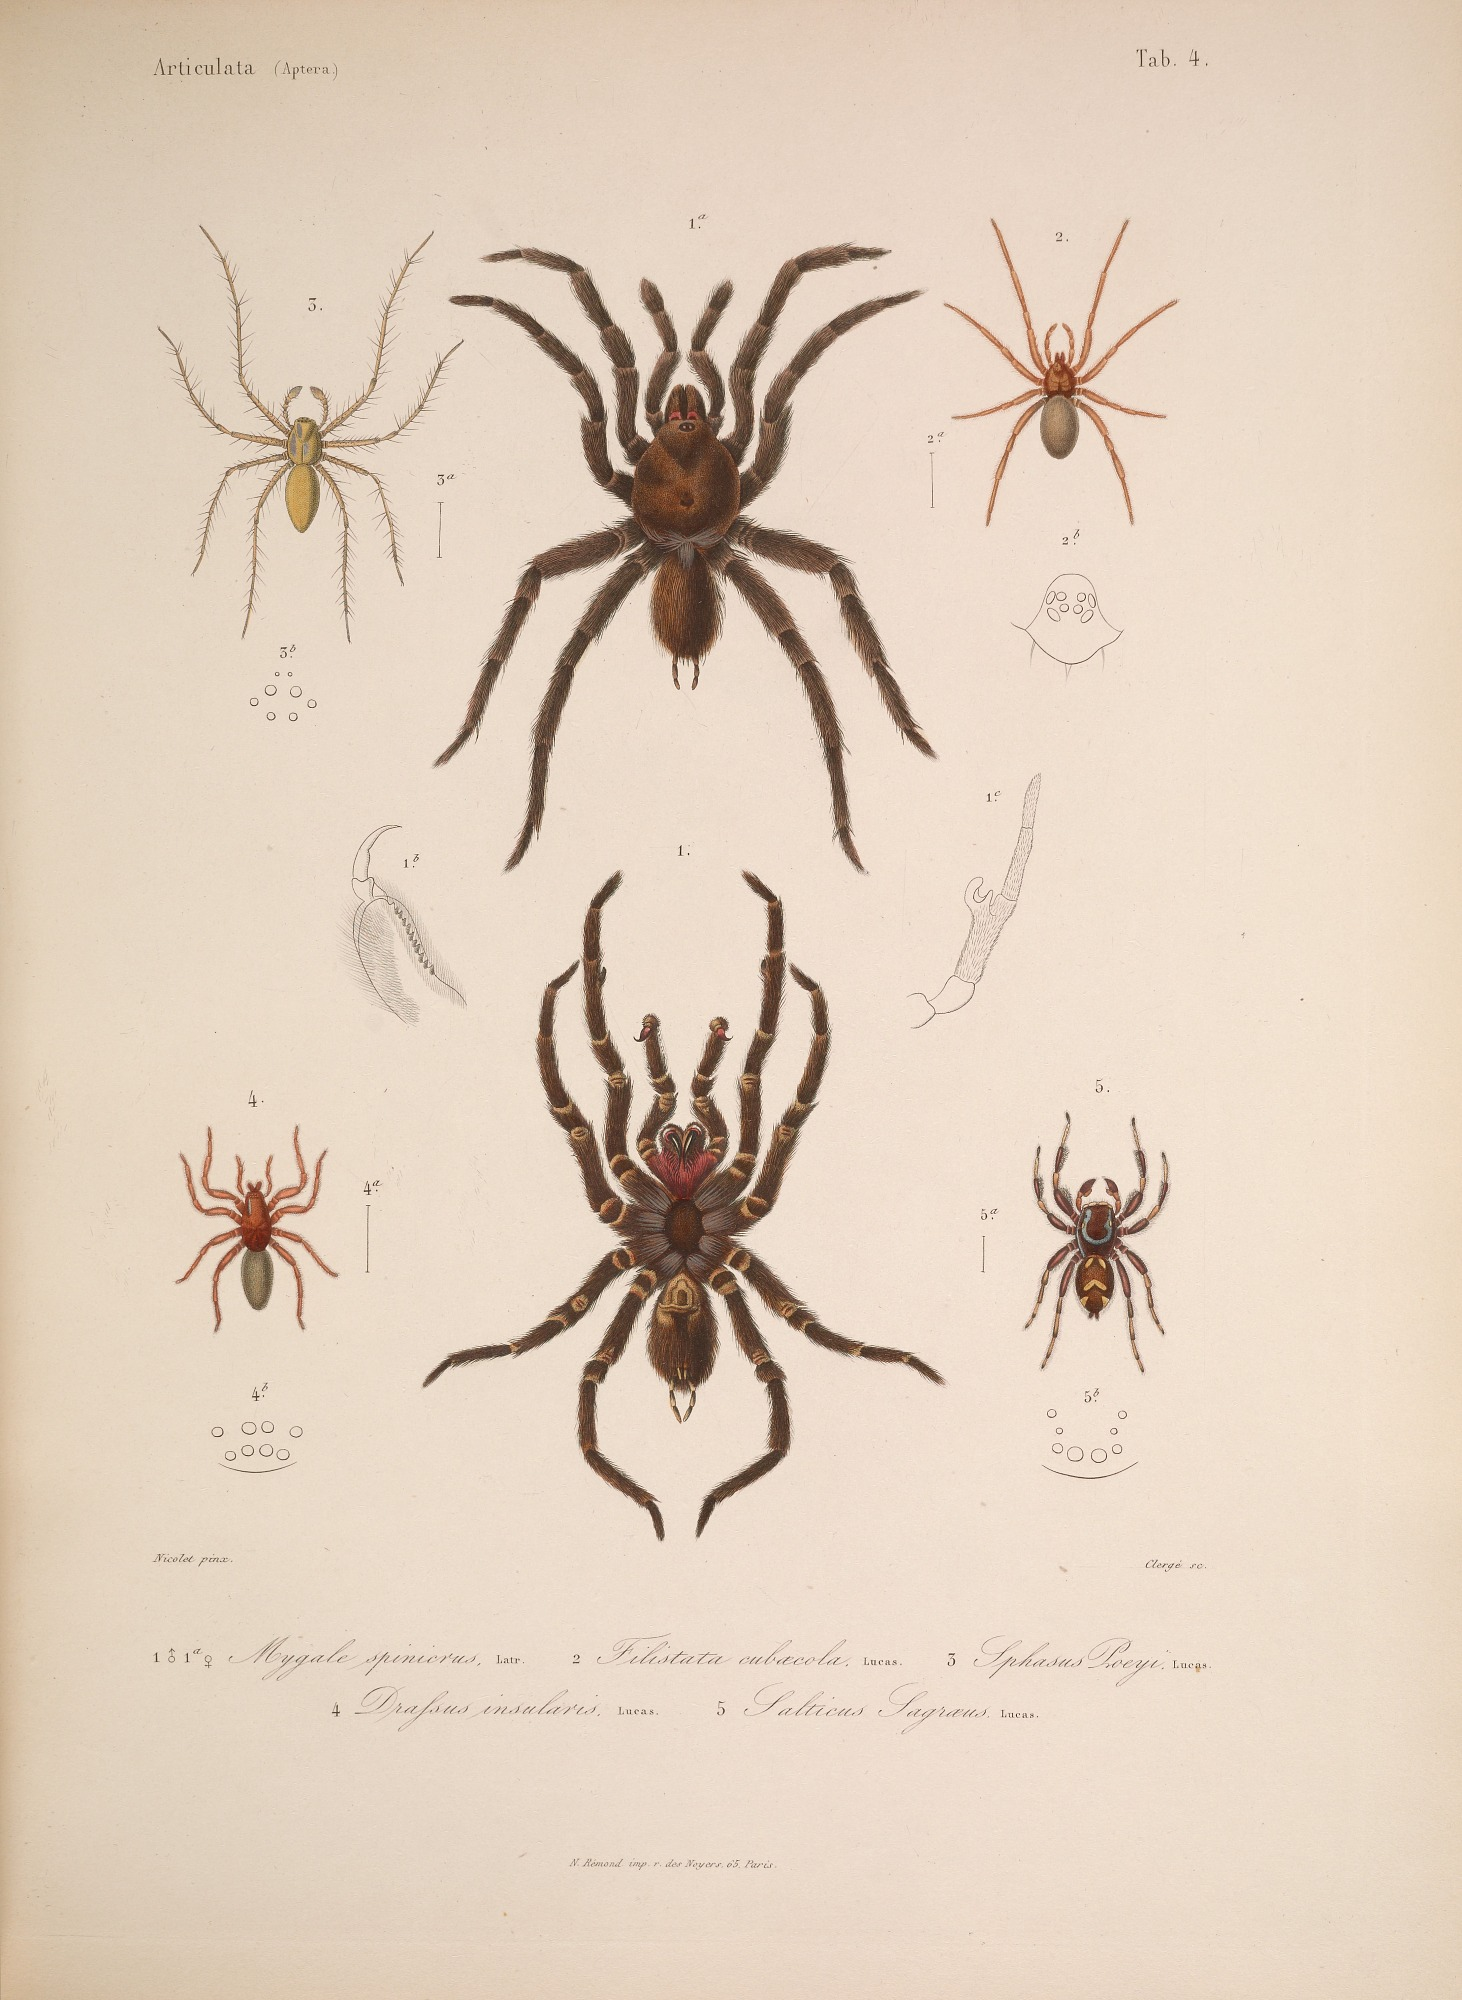 Species and anatomy of Cuban spiders